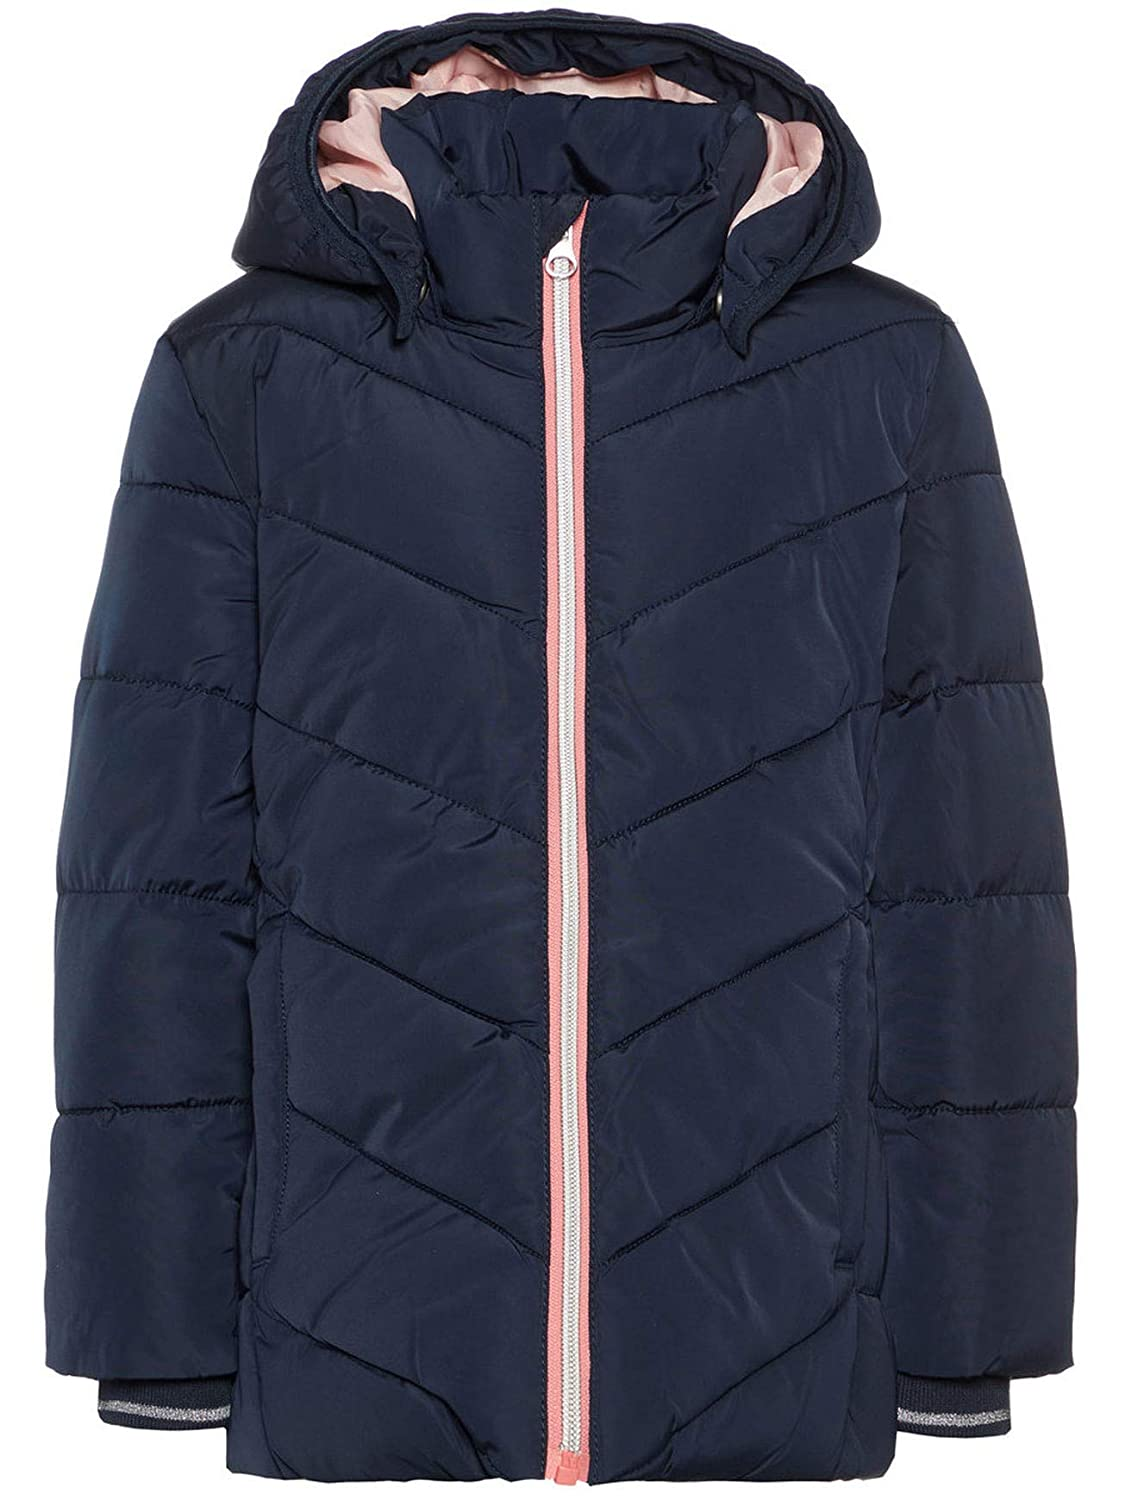 NAME IT Mä dchen Jacke Nmfmil Puffer Jacket Camp 13156123